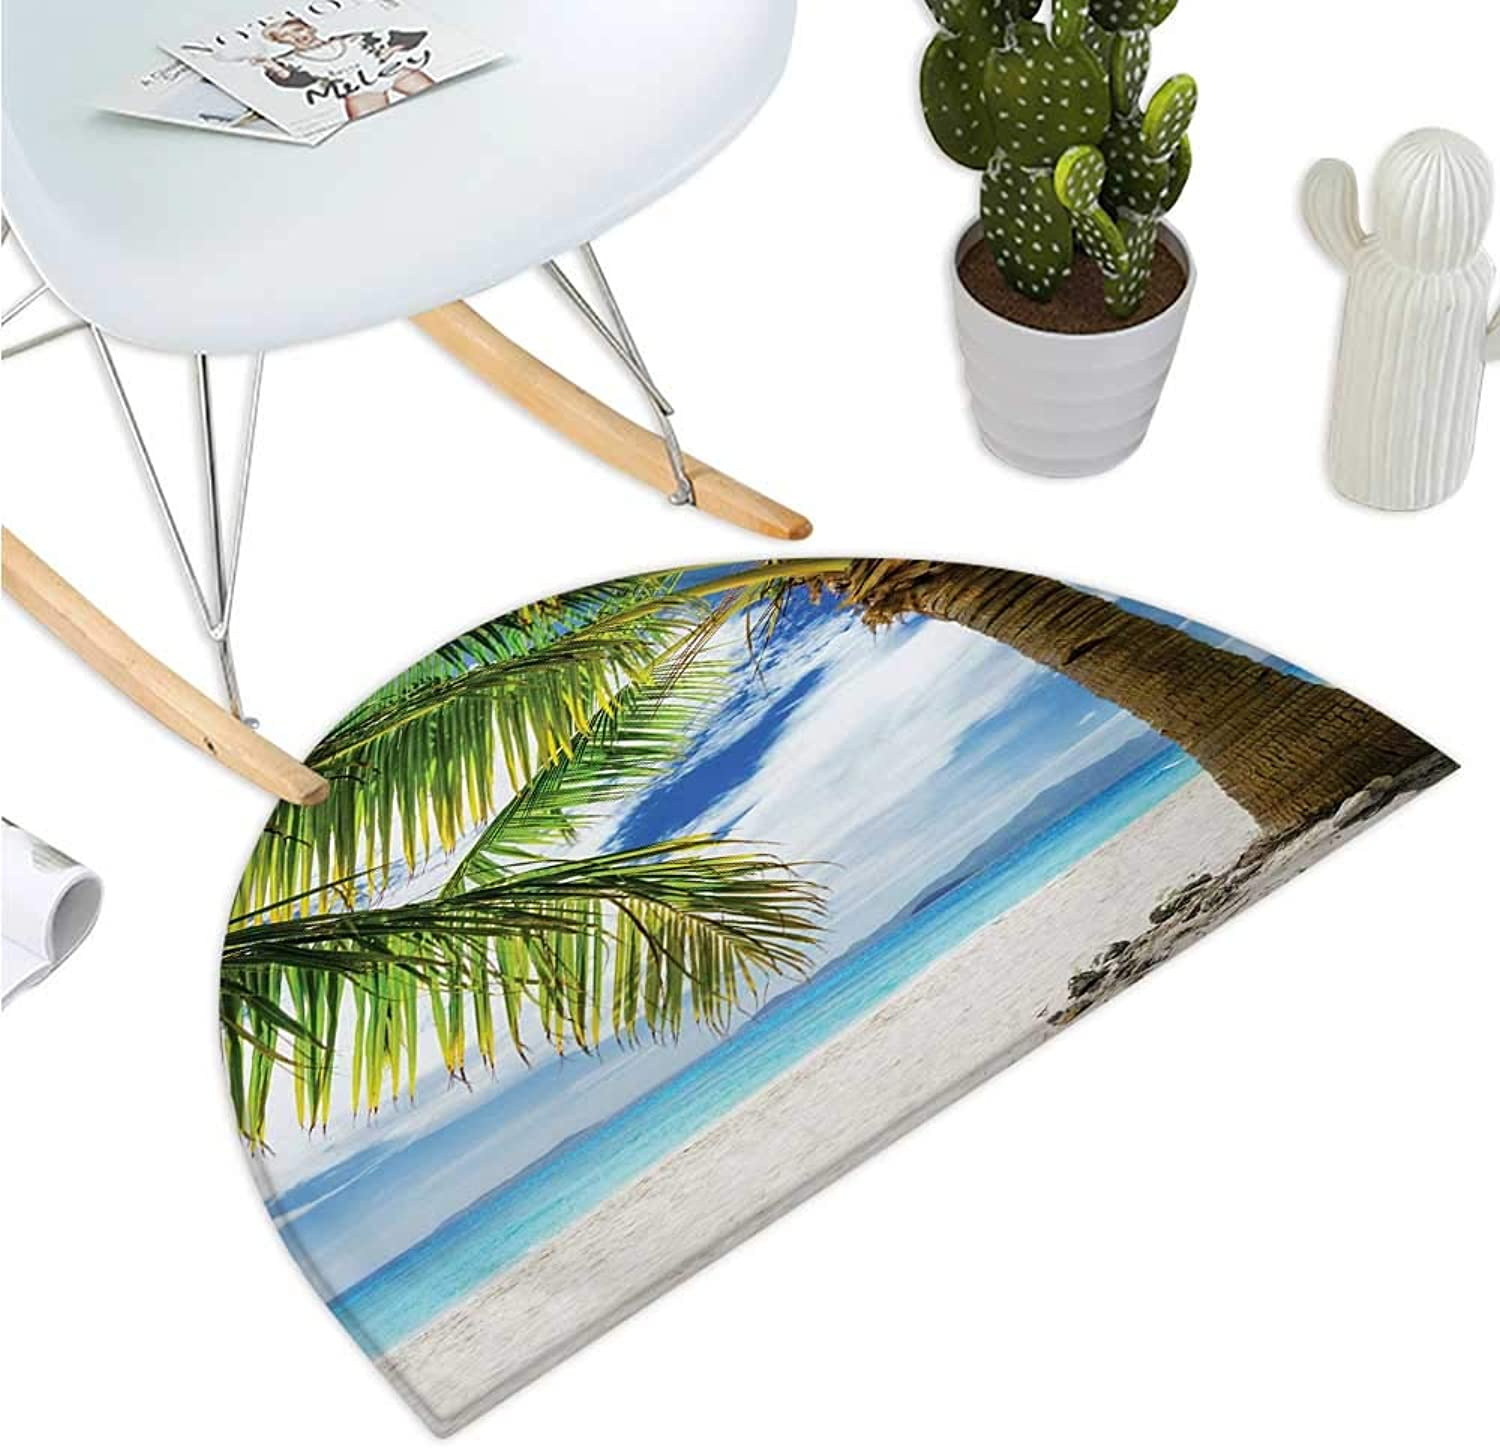 Lonely Palm Tree Semicircle Doormat Sandy Beach Isolated Philippines Hot Sunny Travel Destination Entry Door Mat H 39.3  xD 59  Green Coconut bluee